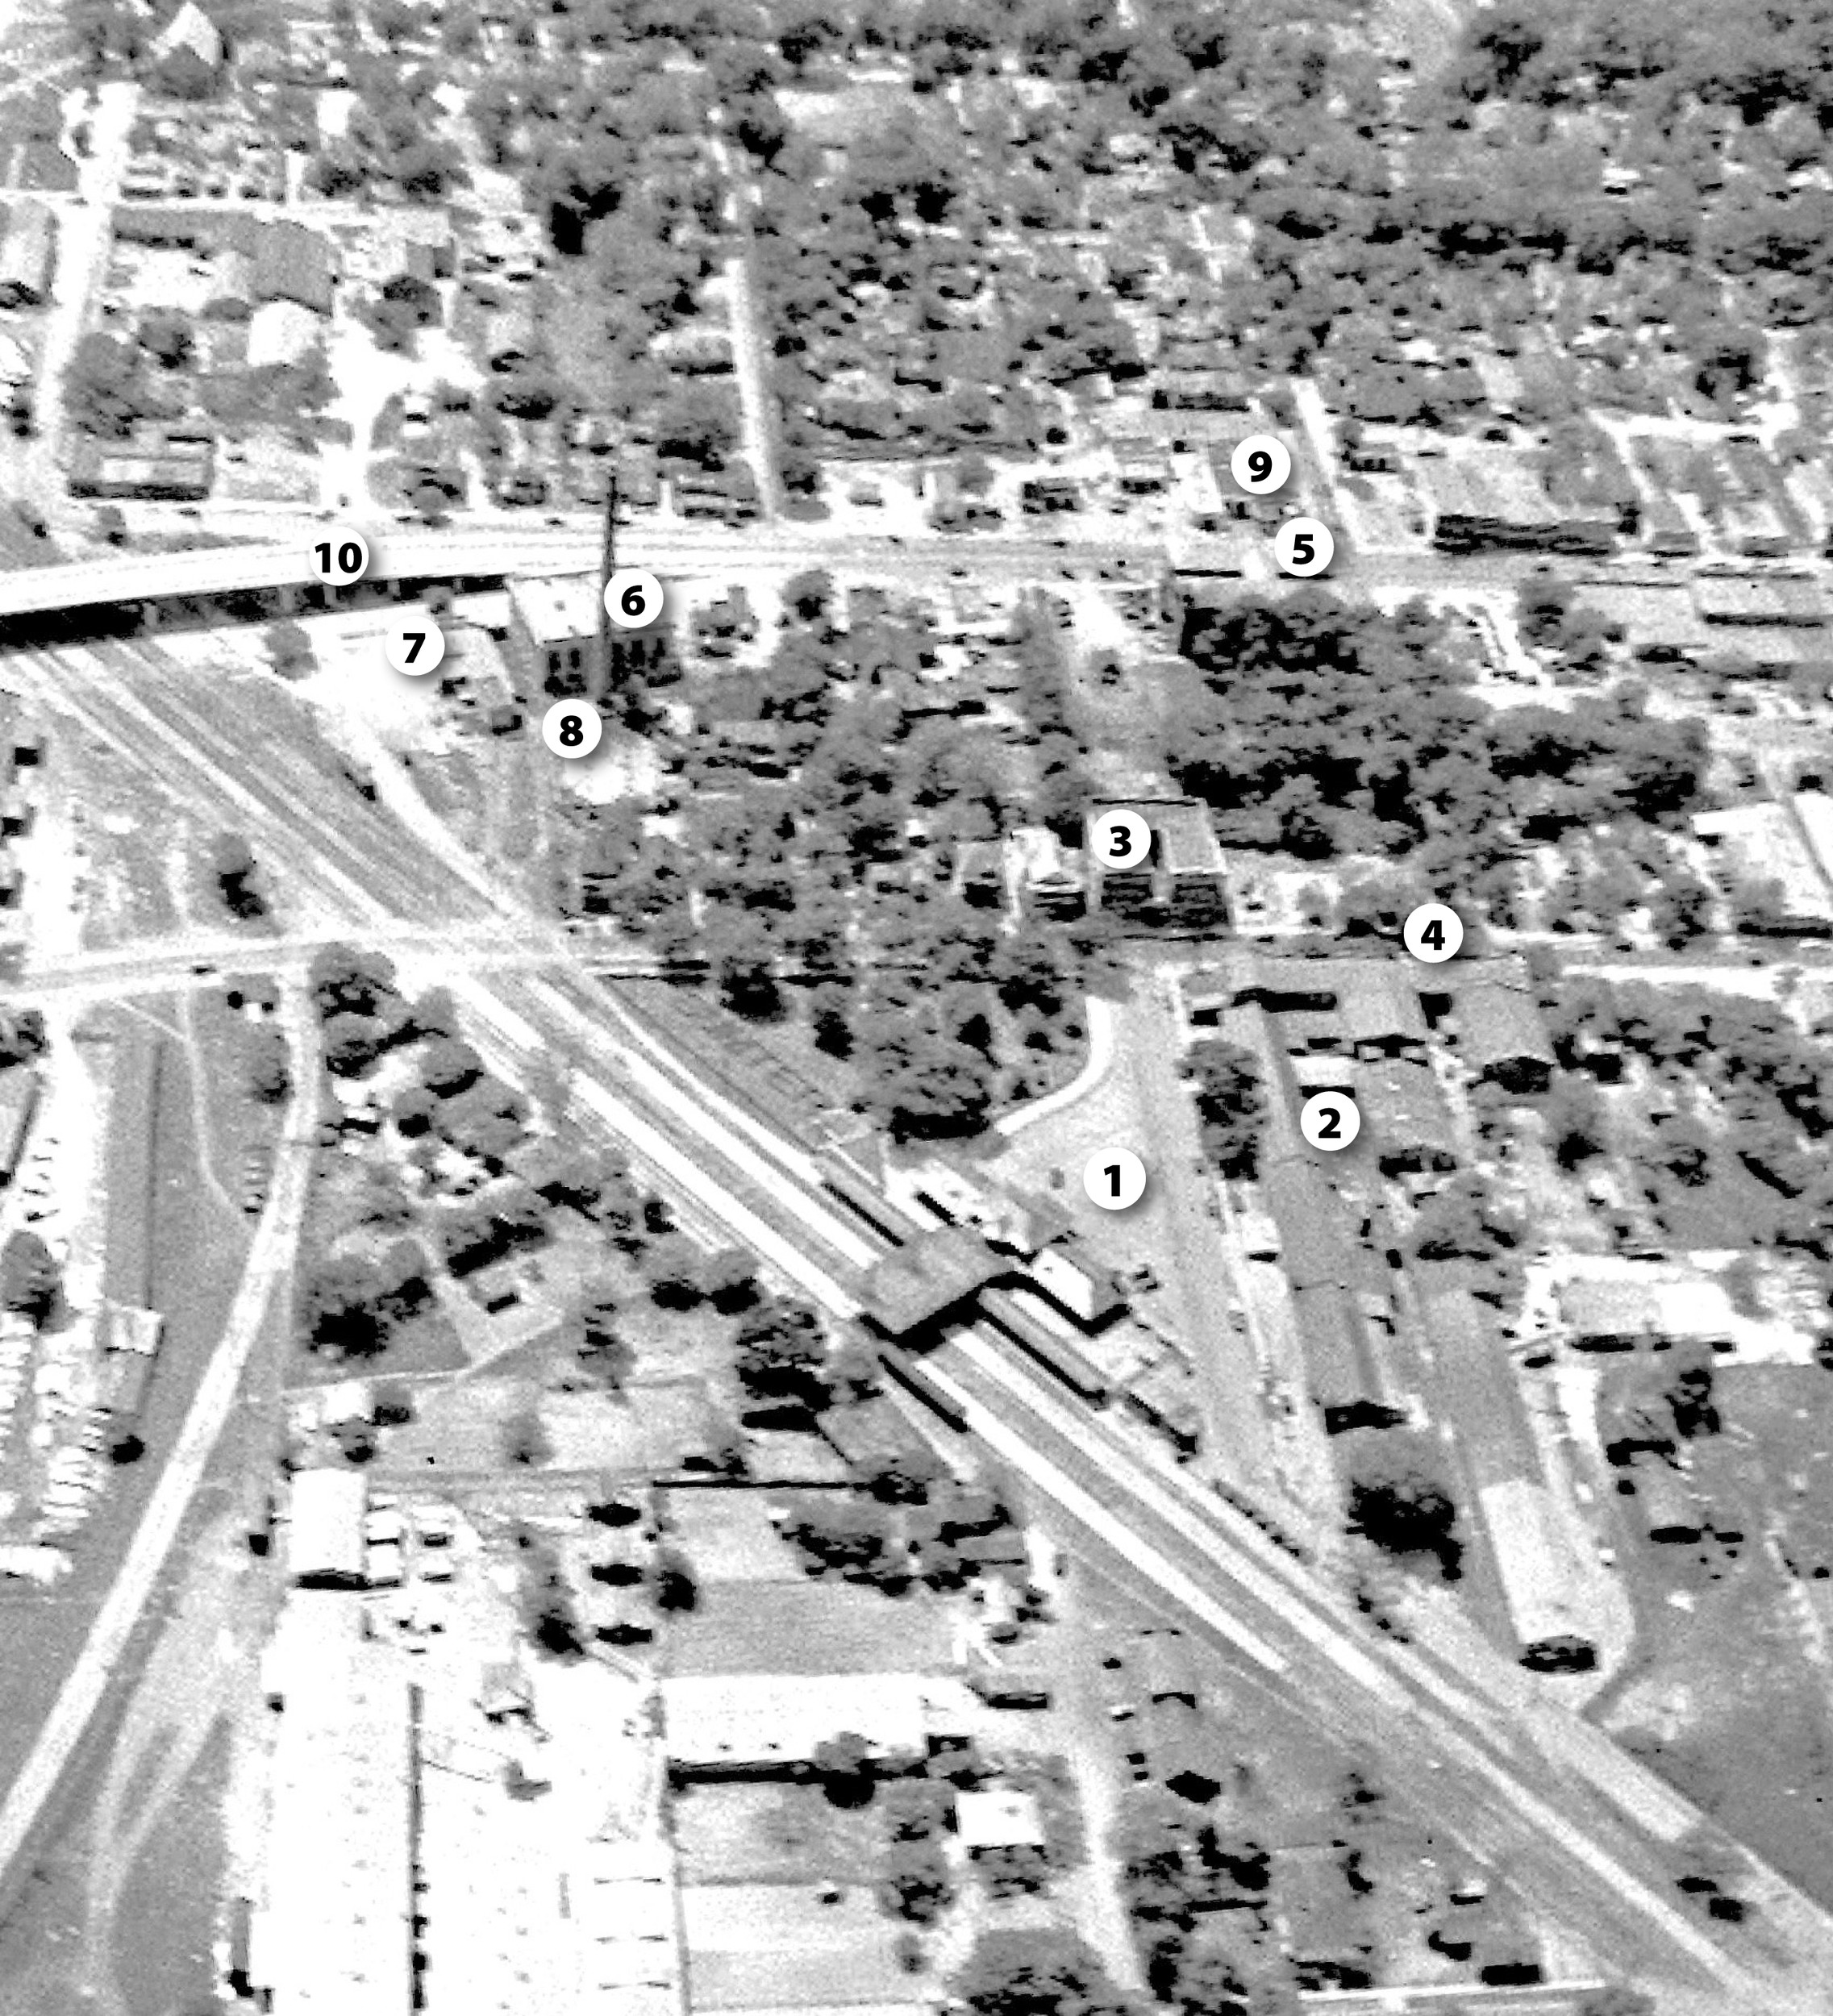 This aerial photograph of Sumter's South Harvin Street area was taken by the late Heyward Crowson, probably in the mid-1940s.